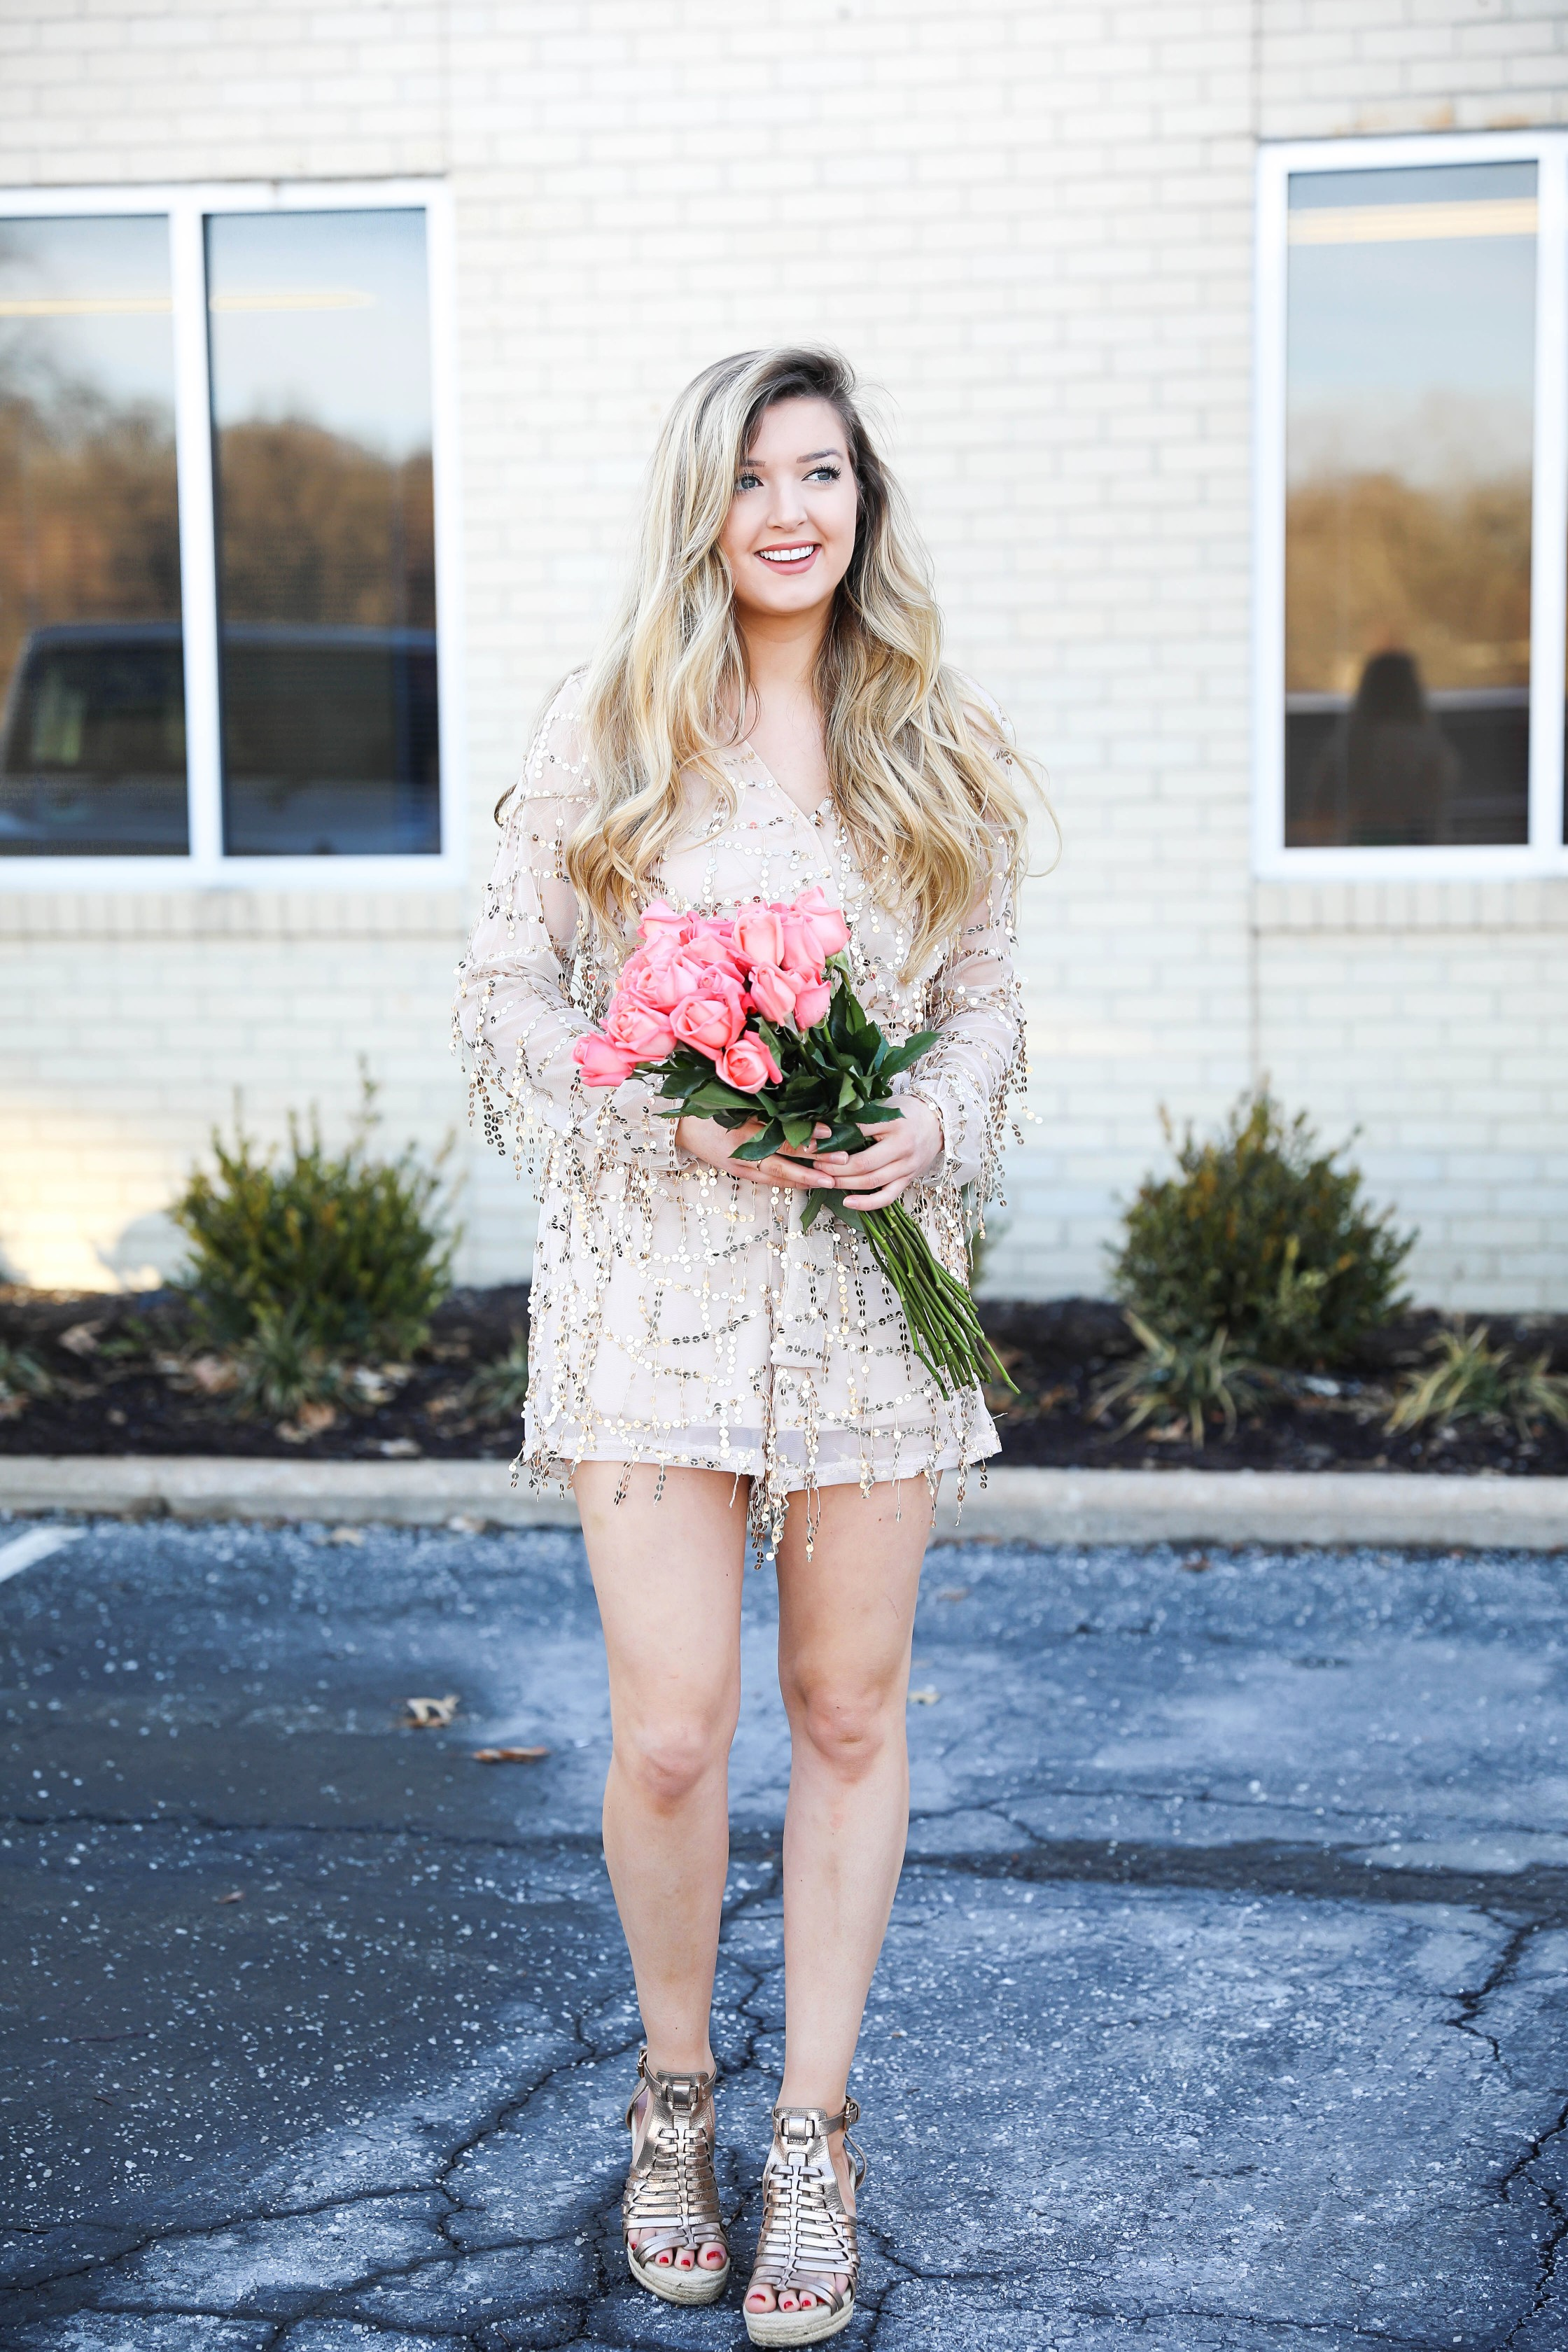 Gold sequin romper from MissGuided! Valentine's day romper! Girly date outfit! Blogger with rose bouquet on fashion blog daily dose of charm by lauren lindmark